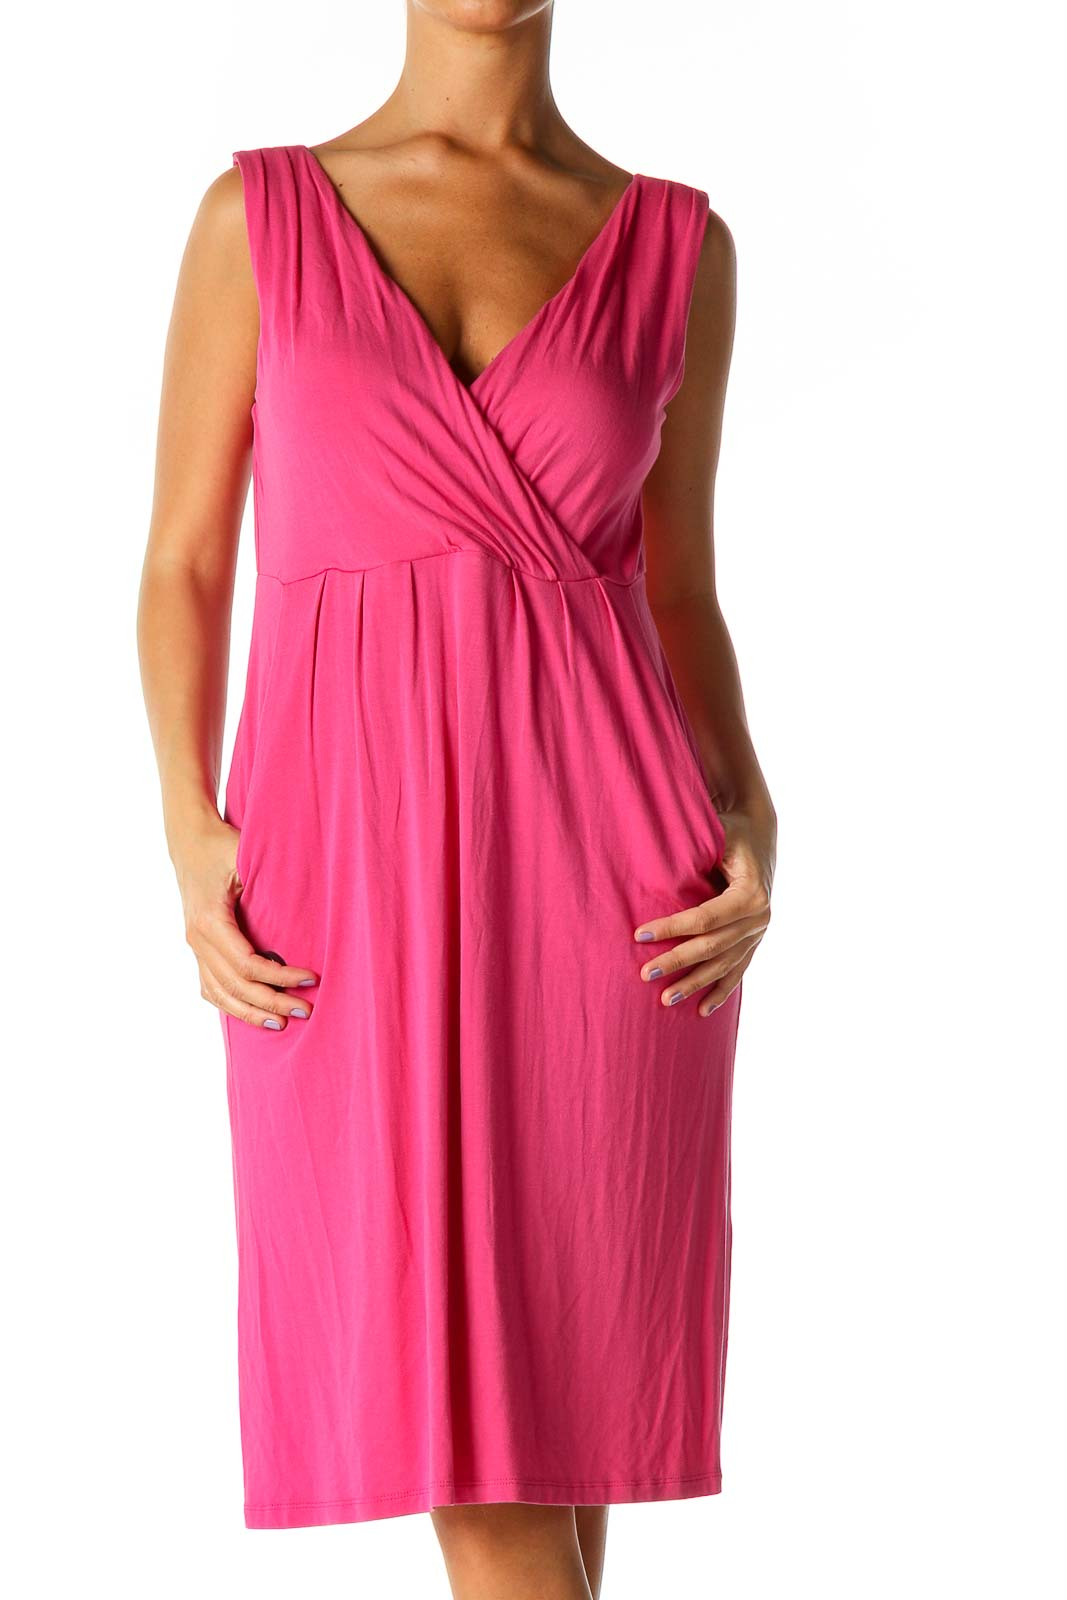 Pink Solid Casual Column Dress Front